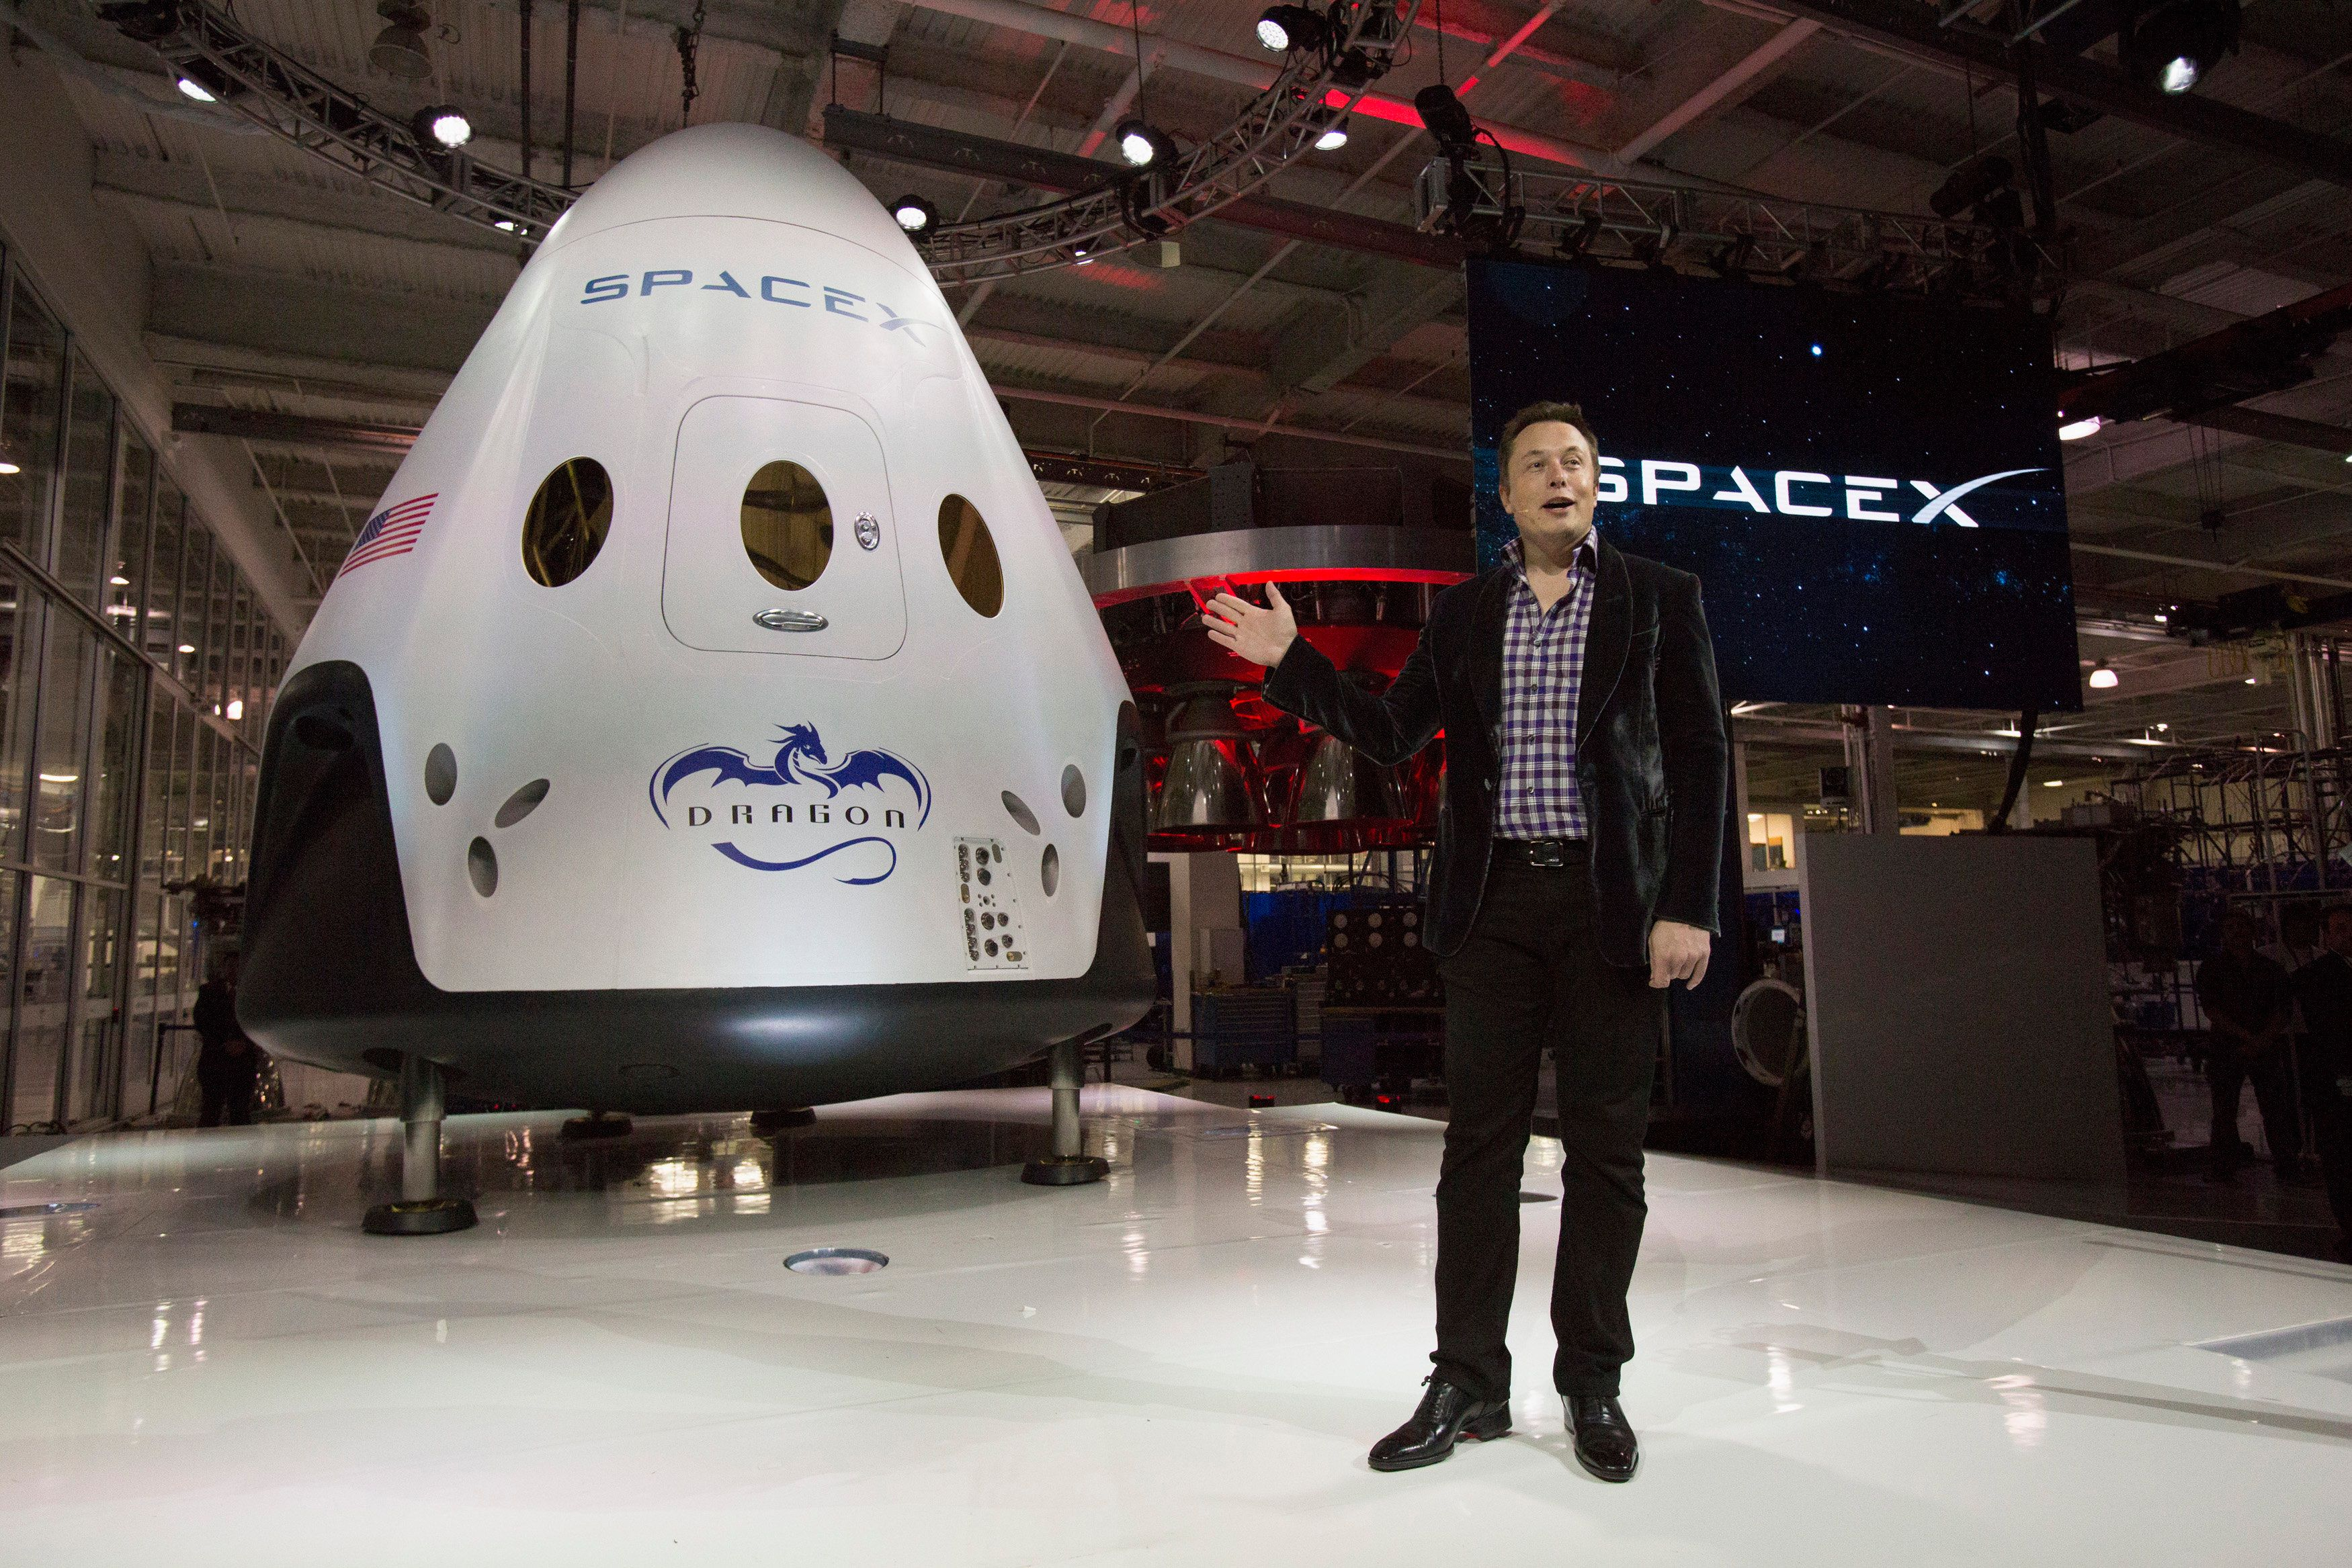 SpaceX CEO Elon Musk speaks after unveiling the Dragon V2 spacecraft in Hawthorne, California May 29, 2014. Space Exploration Technologies, or SpaceX, on Thursday unveiled an upgraded passenger version of the Dragon cargo ship NASA buys for resupply runs to the International Space Station. REUTERS/Mario Anzuoni  (UNITED STATES - Tags: POLITICS TRANSPORT SCIENCE TECHNOLOGY SOCIETY)